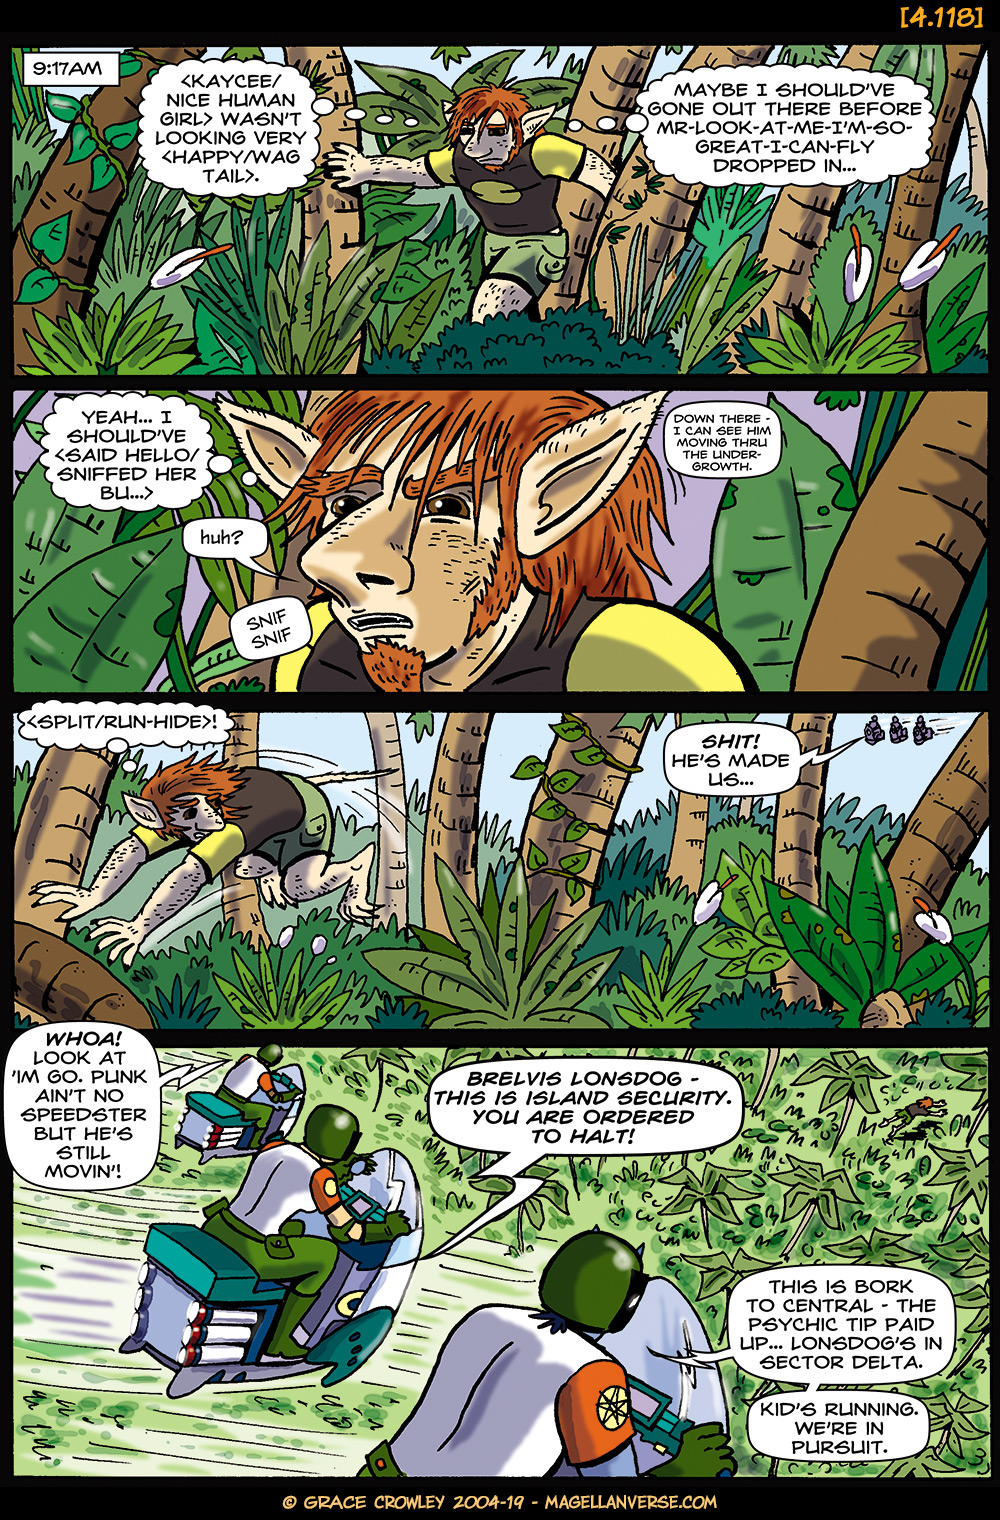 Page 4.118